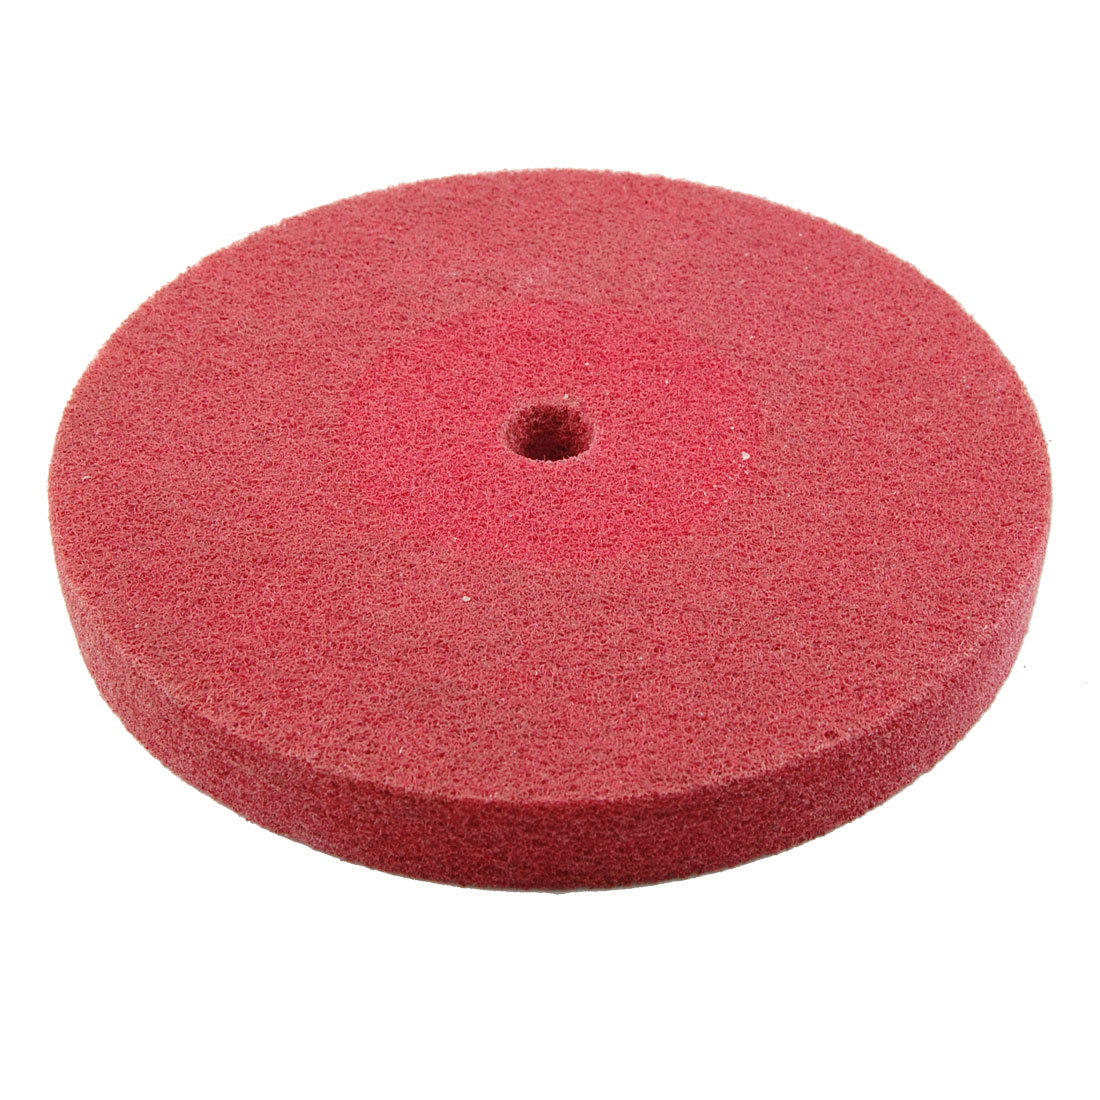 203mm Dia Nylon Abrasive Grinding Polishing Buffing Wheel Red